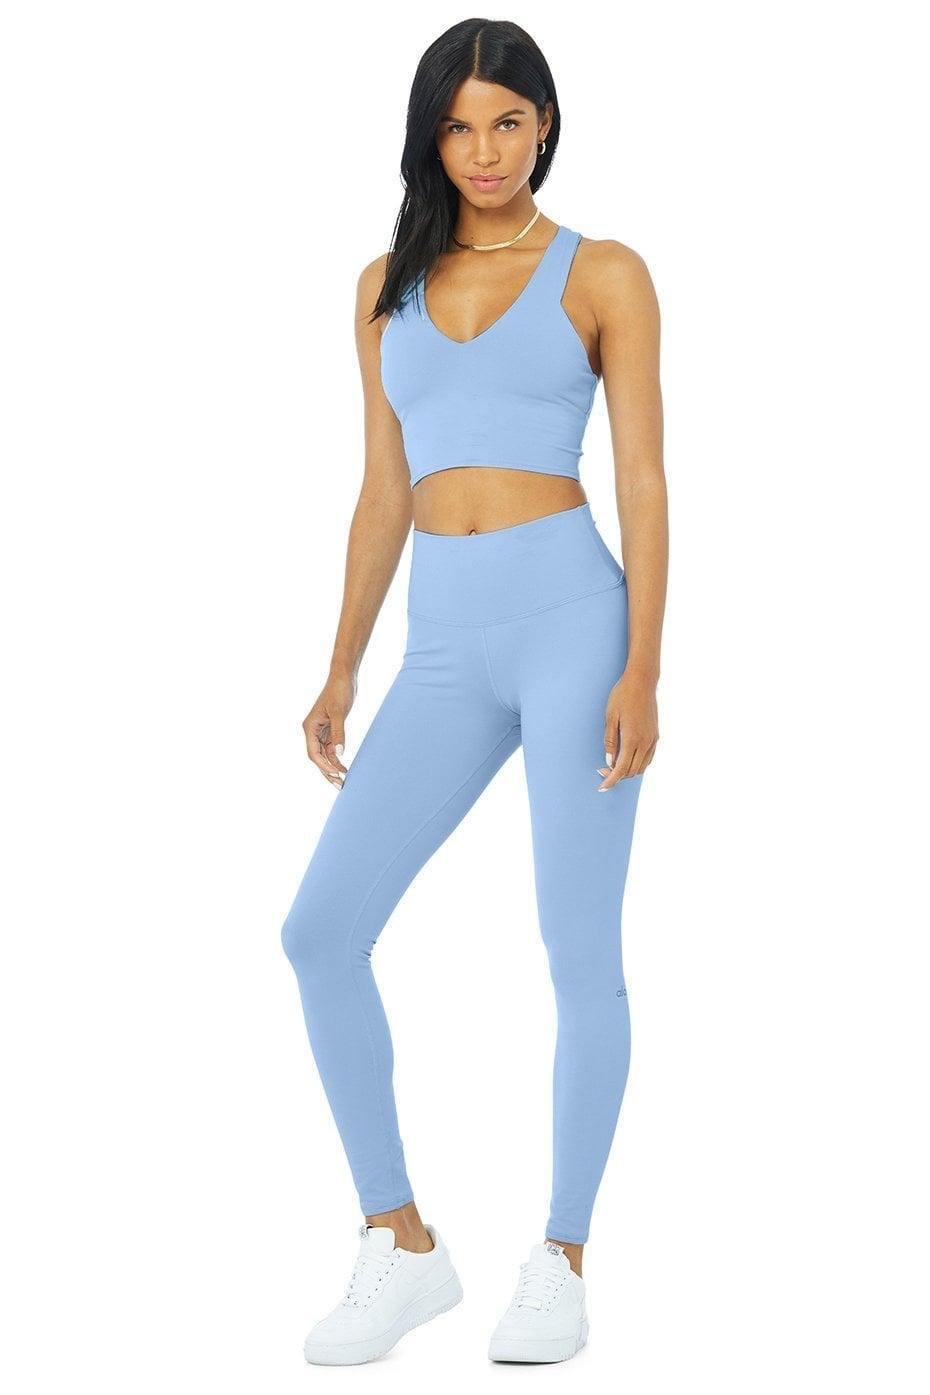 <p>We love the look of this <span>Alo Real Bra Tank &amp; High-Waist Airbrush Legging Set </span> ($154). Not only is the baby blue adorable, the Airbrush fabric is thick enough for those transitional fall days. We like this set for lower impact activities.</p>